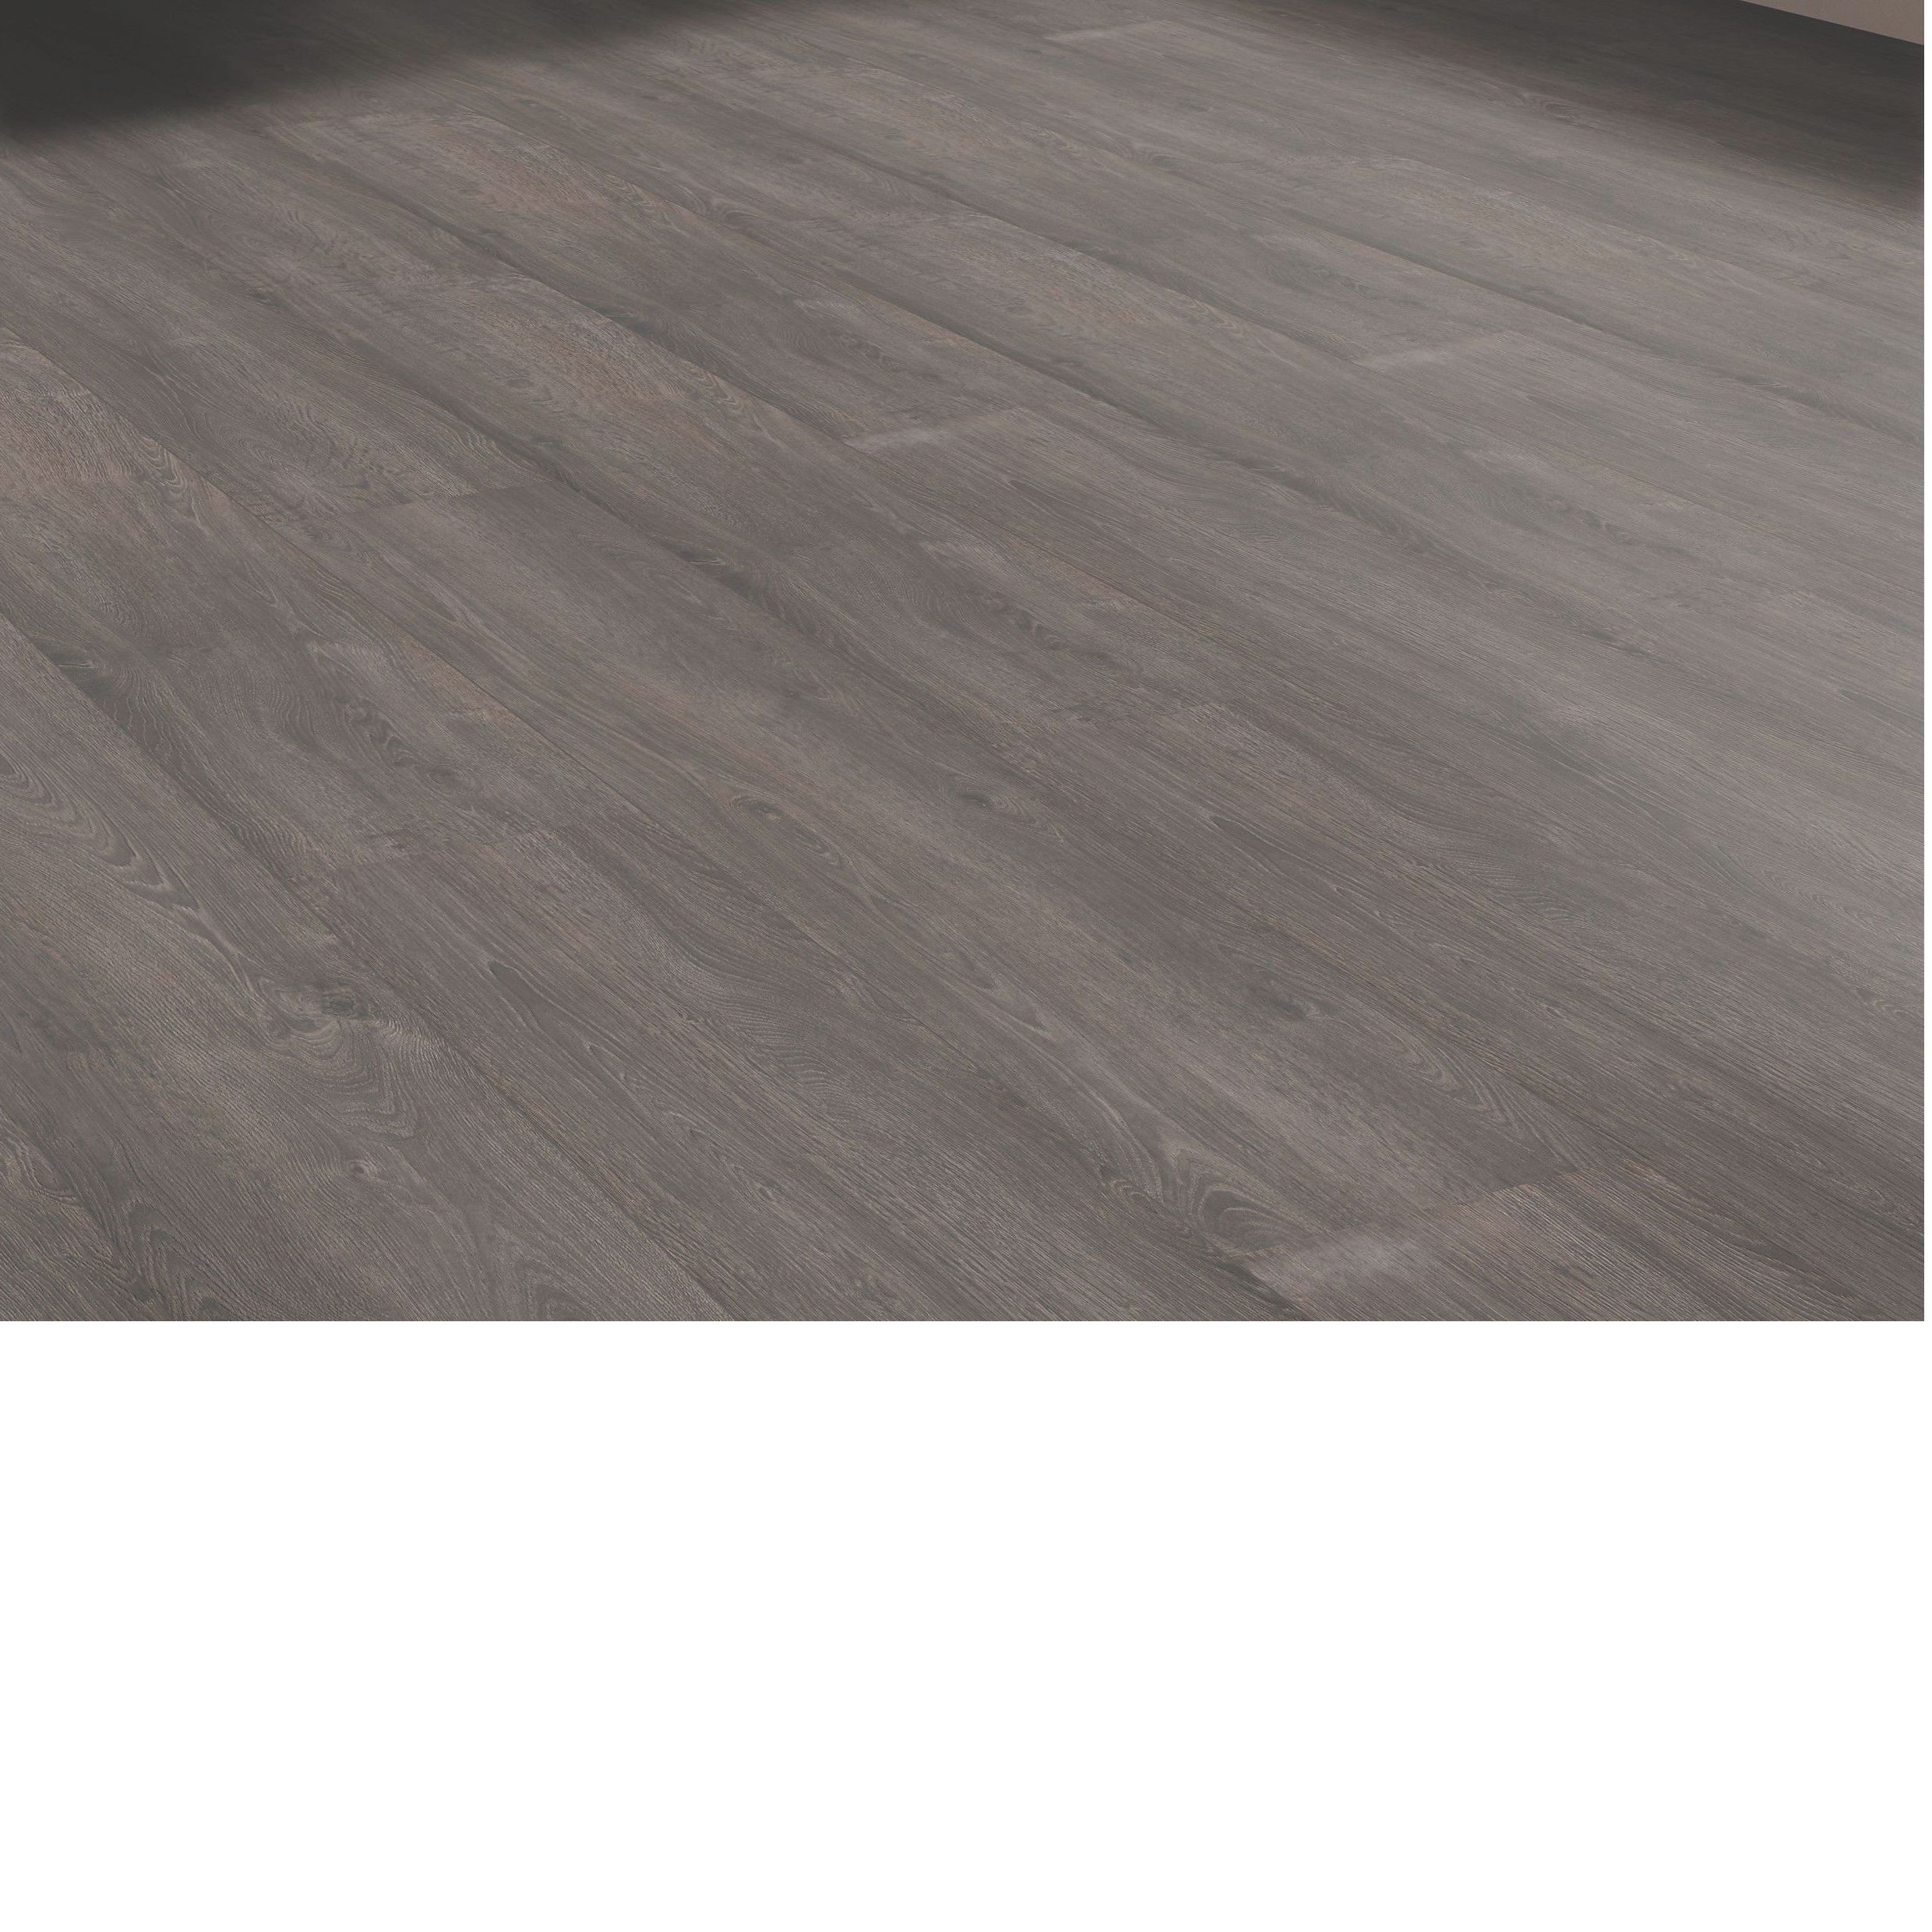 laminate bruce plank wood finding also unfinished best floor and lovely tips with wide for flooring hardwood tile black